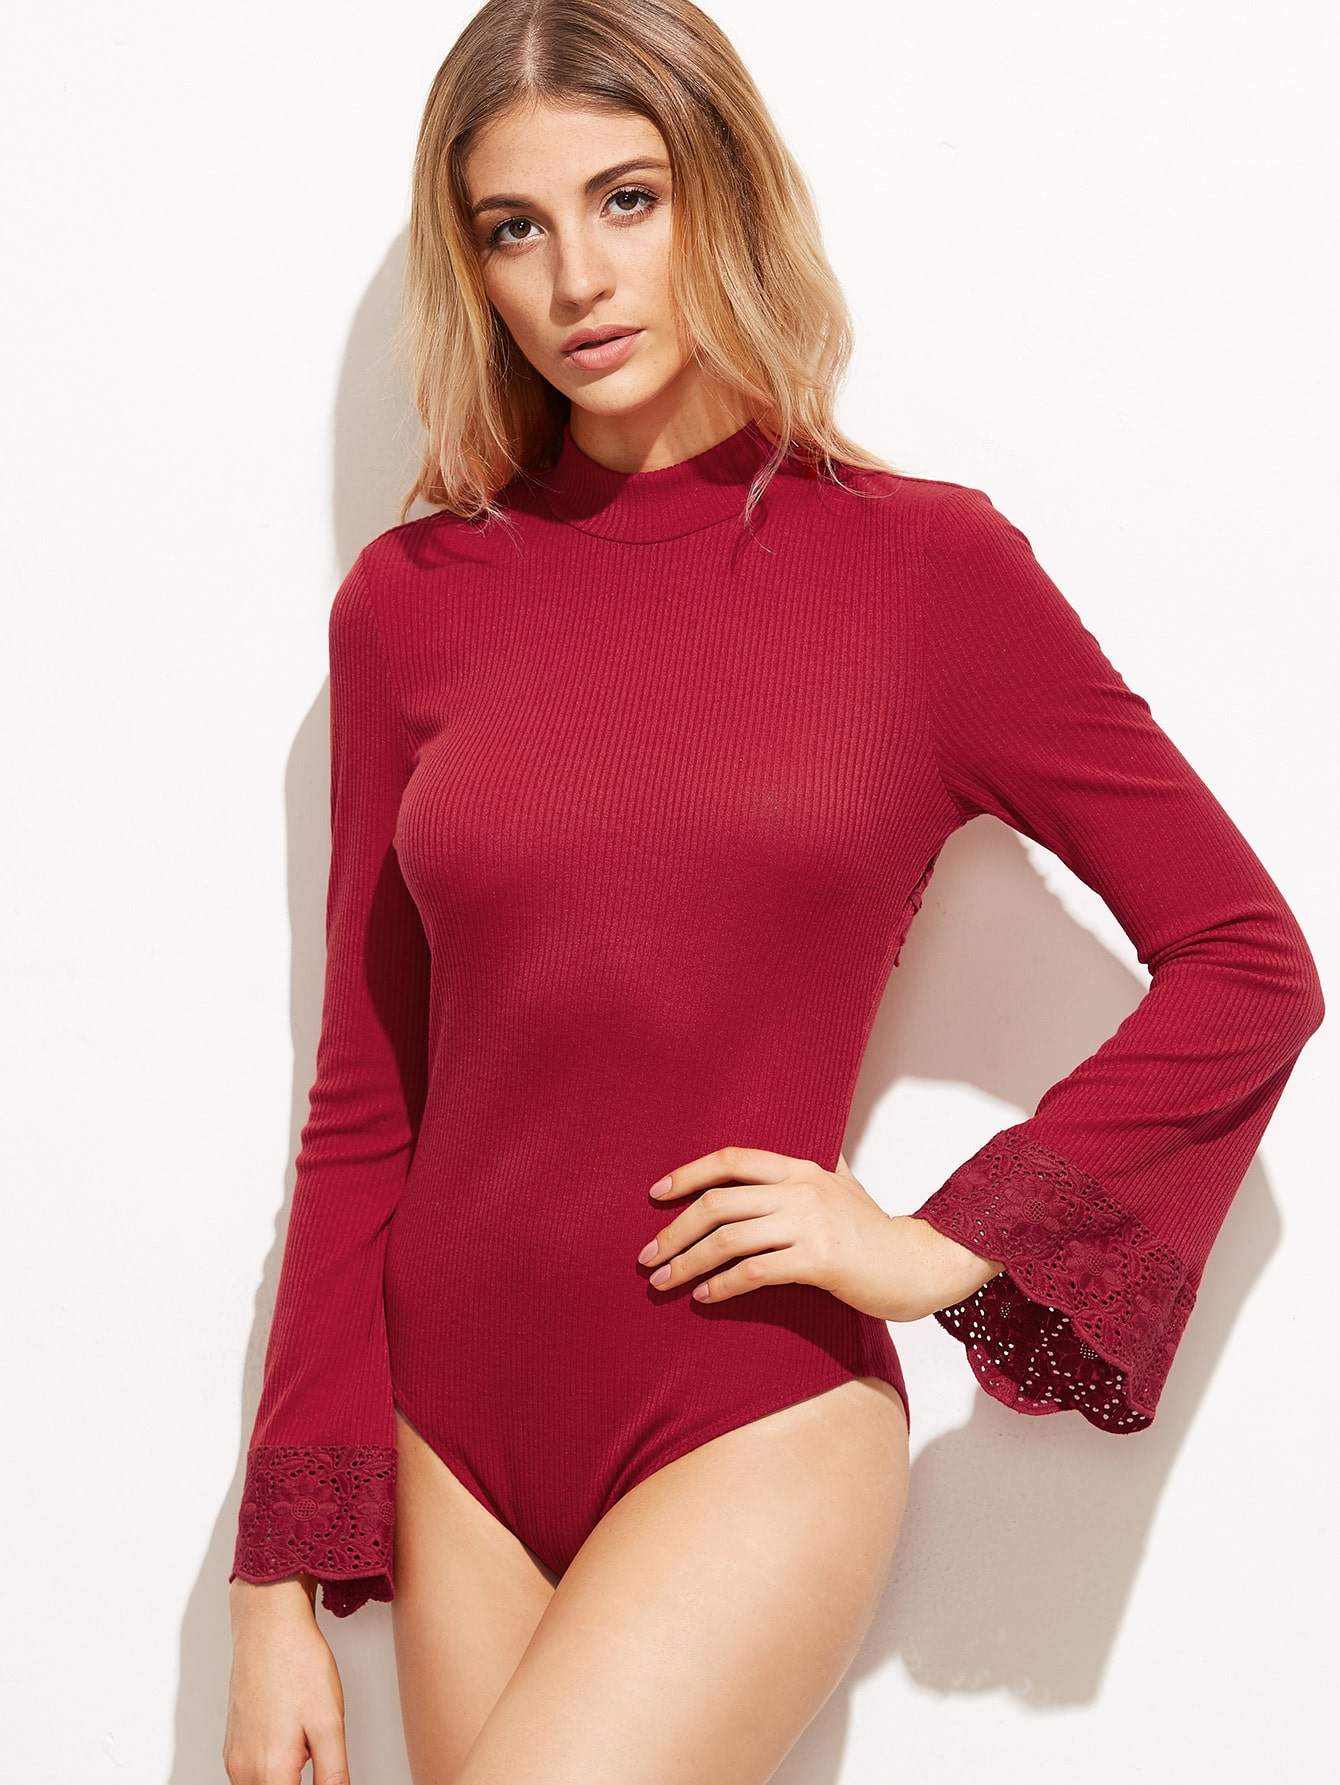 Burgundy Open Back Embroidered Lace Applique Ribbed BodysuitBurgundy Open Back Embroidered Lace Applique Ribbed Bodysuit<br><br>color: Burgundy<br>size: L,M,S,XS